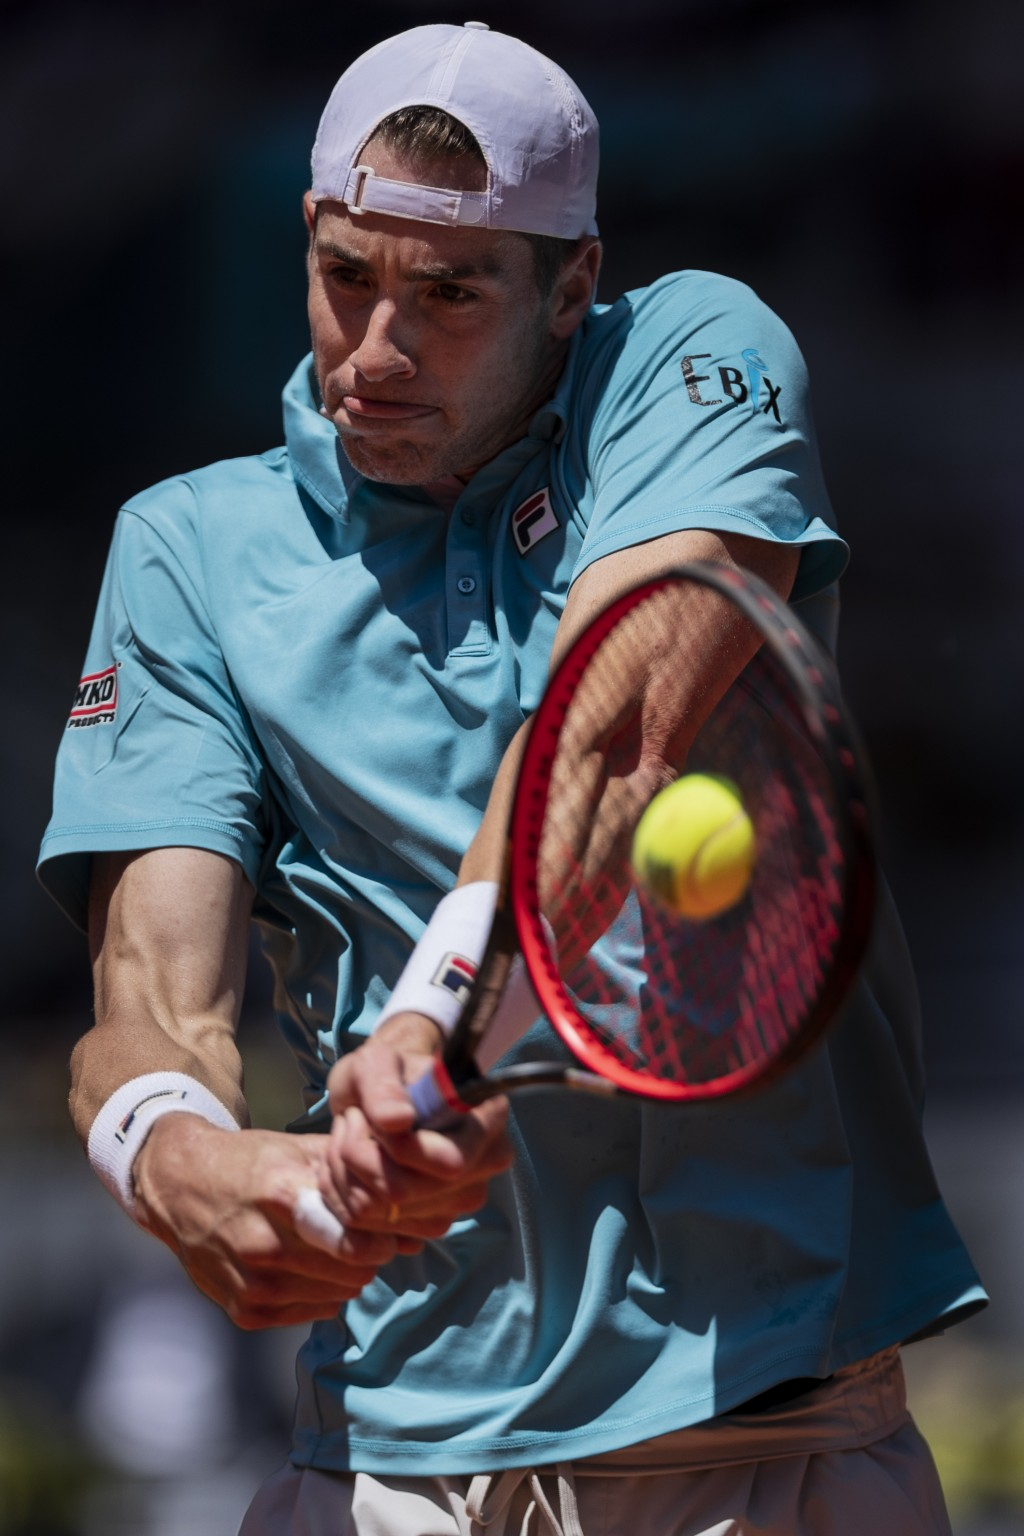 United States' John Isner returns the ball to Austria's Dominic Thiem during their match at the Mutua Madrid Open tennis tournament in Madrid, Spain, ...